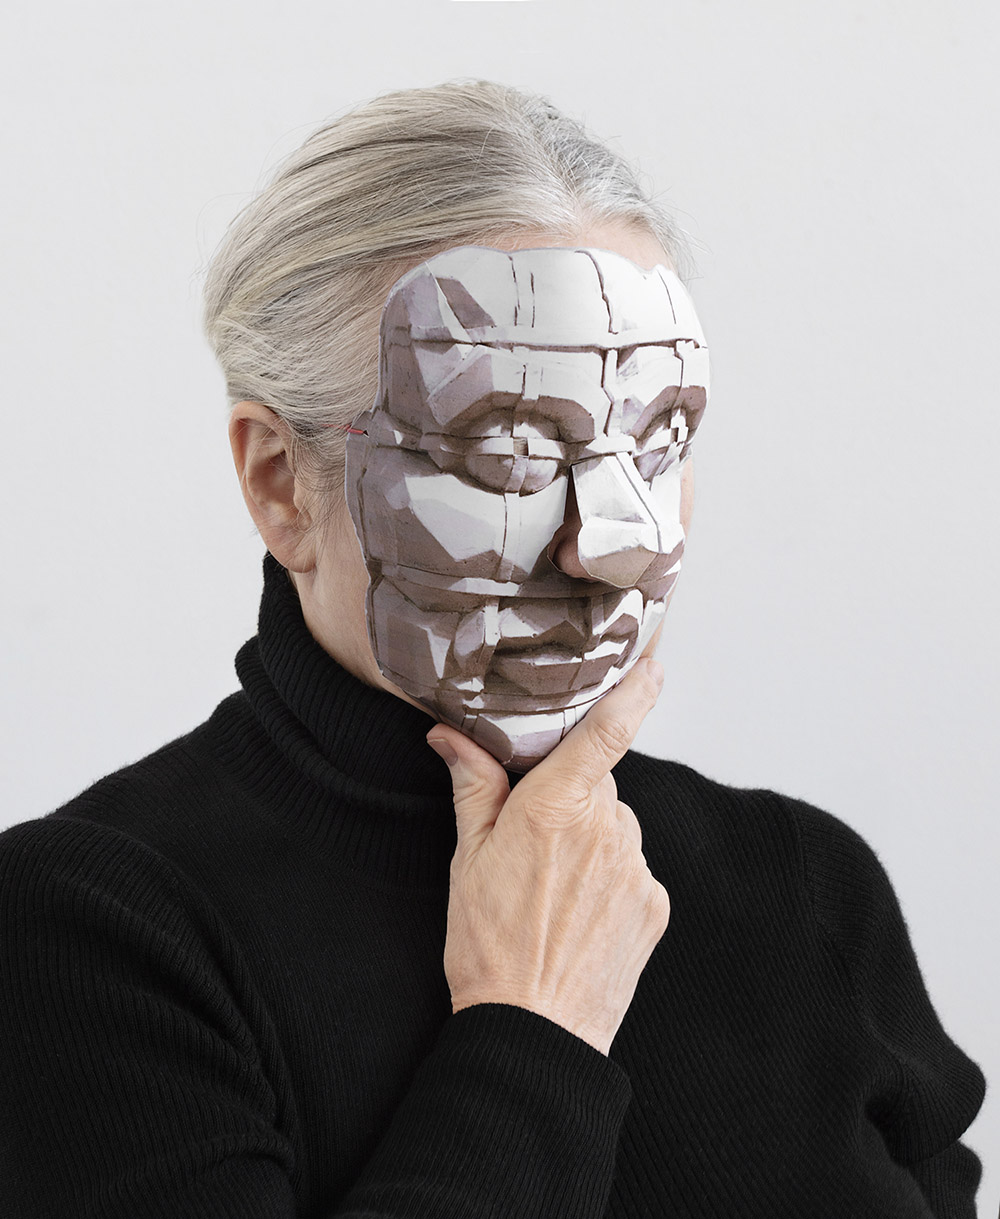 Jytte Høy, Face to Face, 2019. Foto: Dorte Krogh.